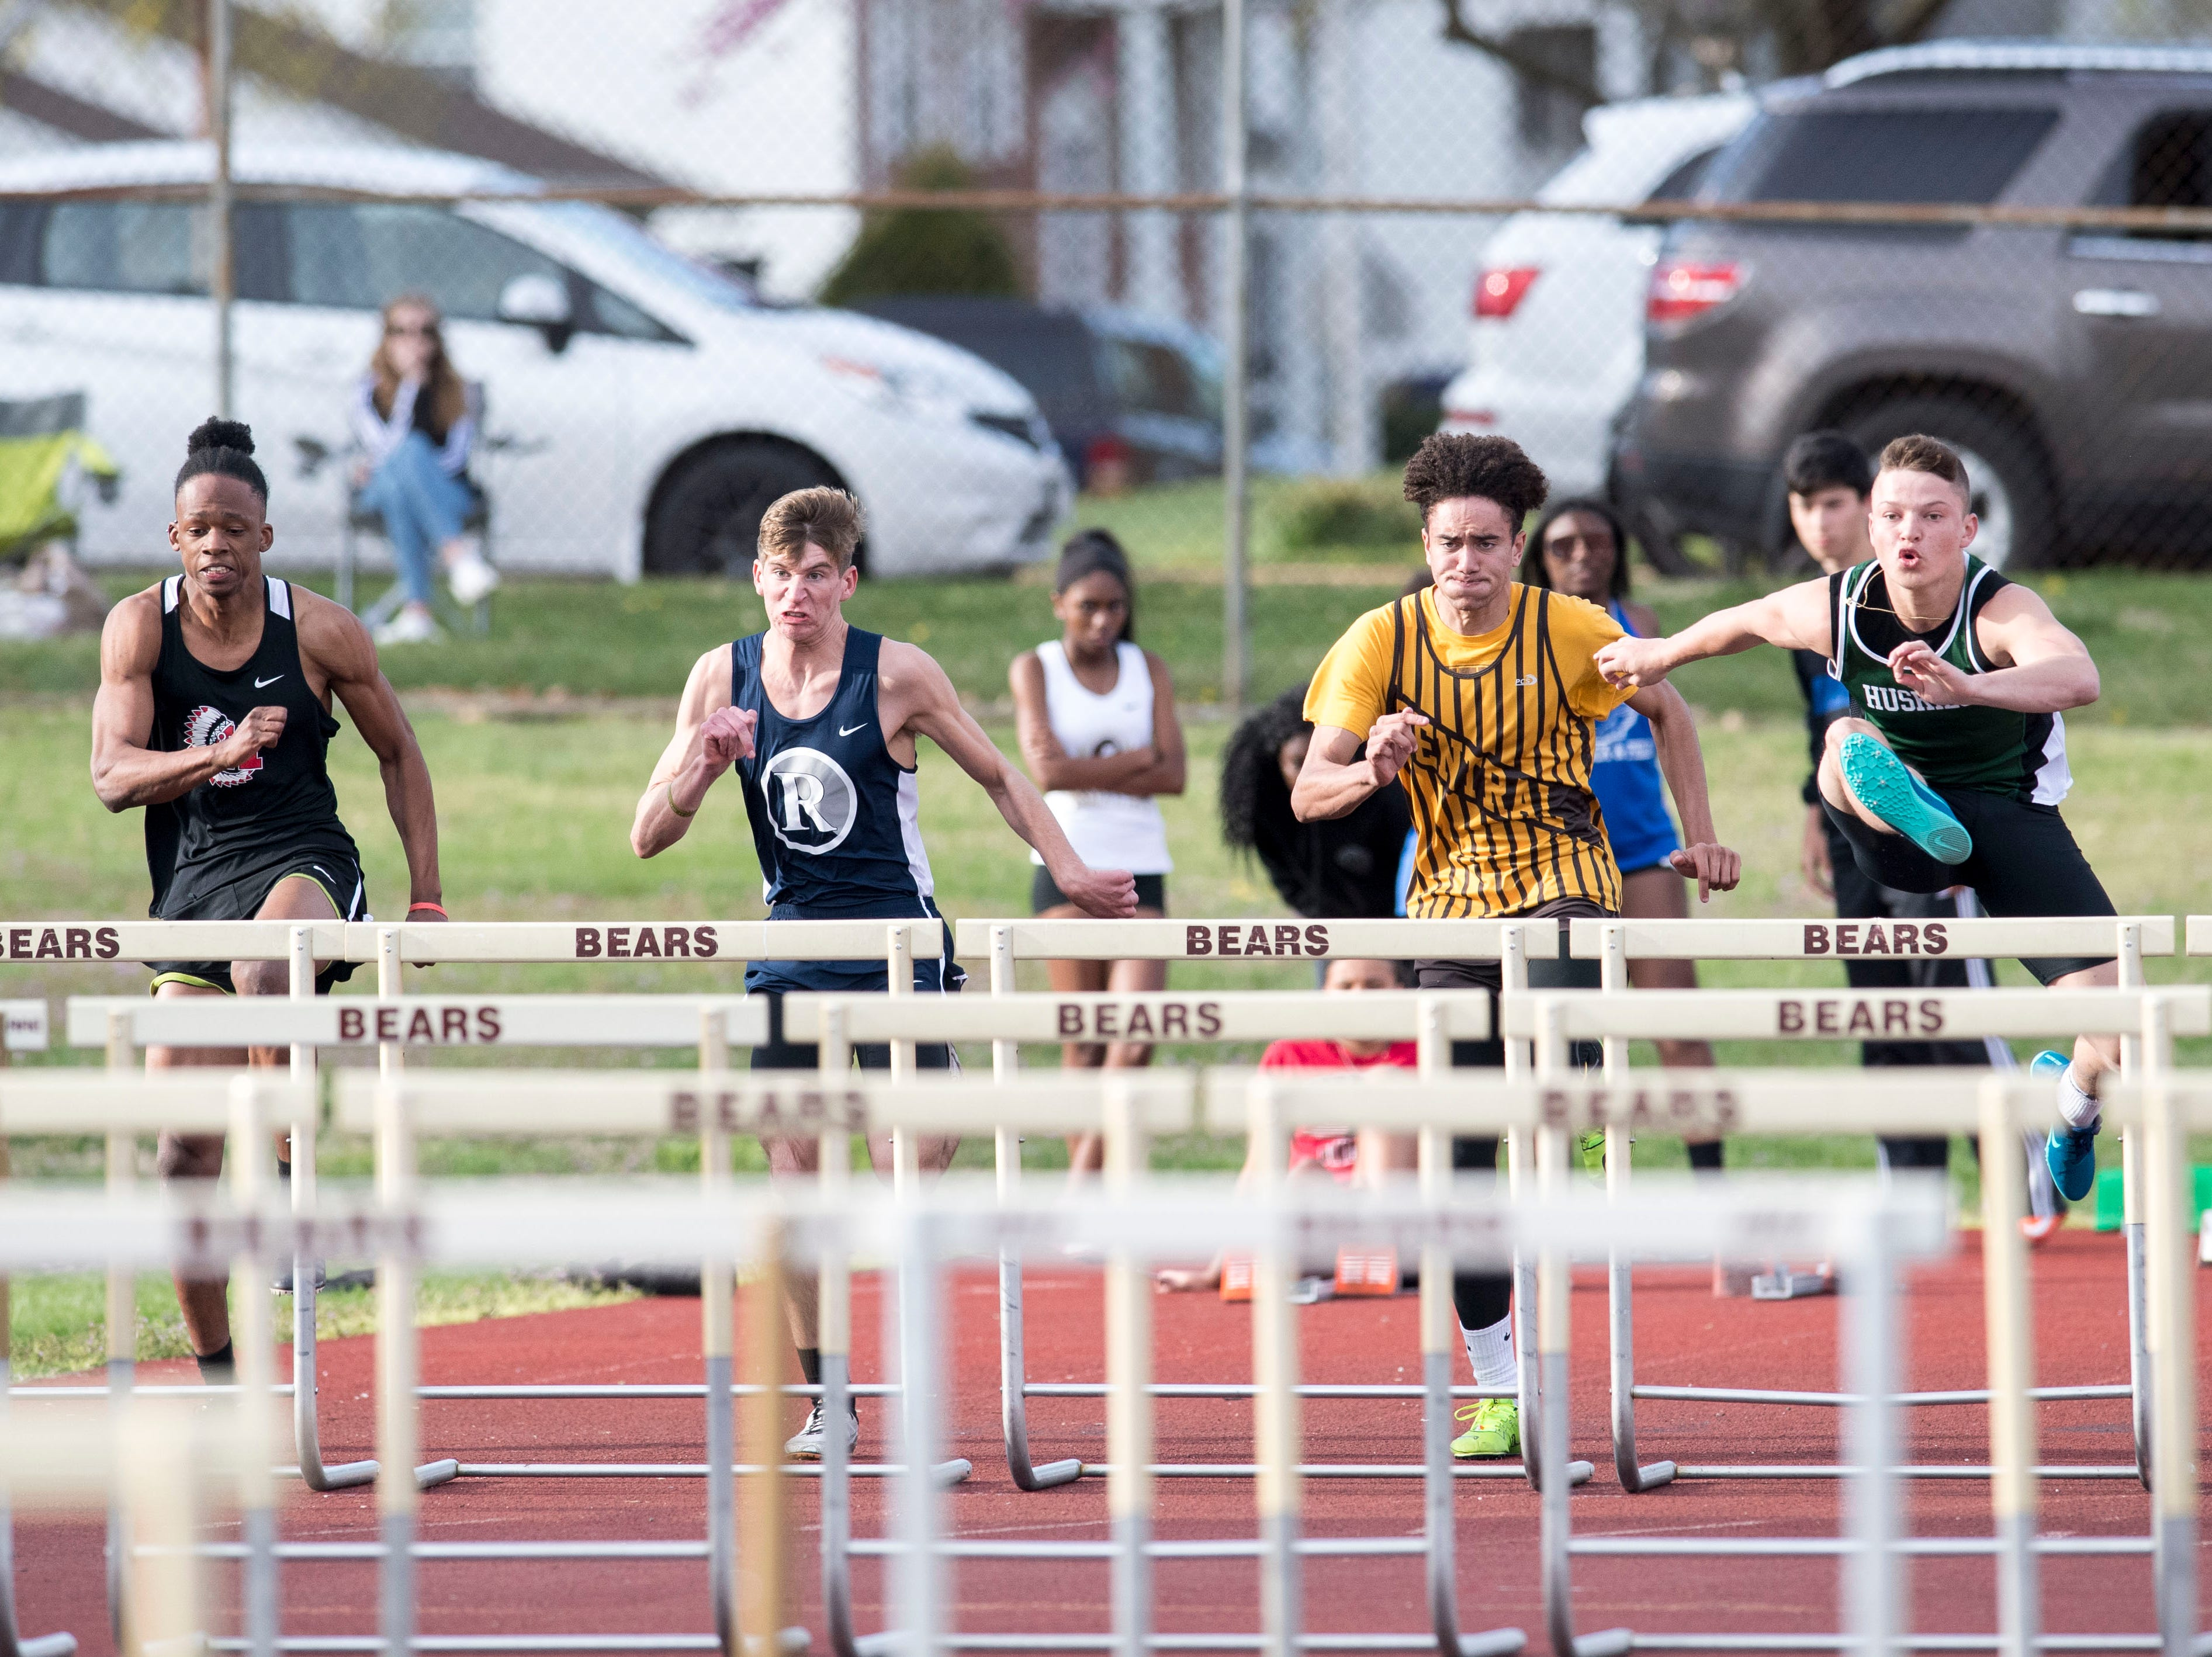 Runners take off in the boys 110m high hurdle event during the 2019 City Track and Field meet at Central High School Friday, April 12, 2019.